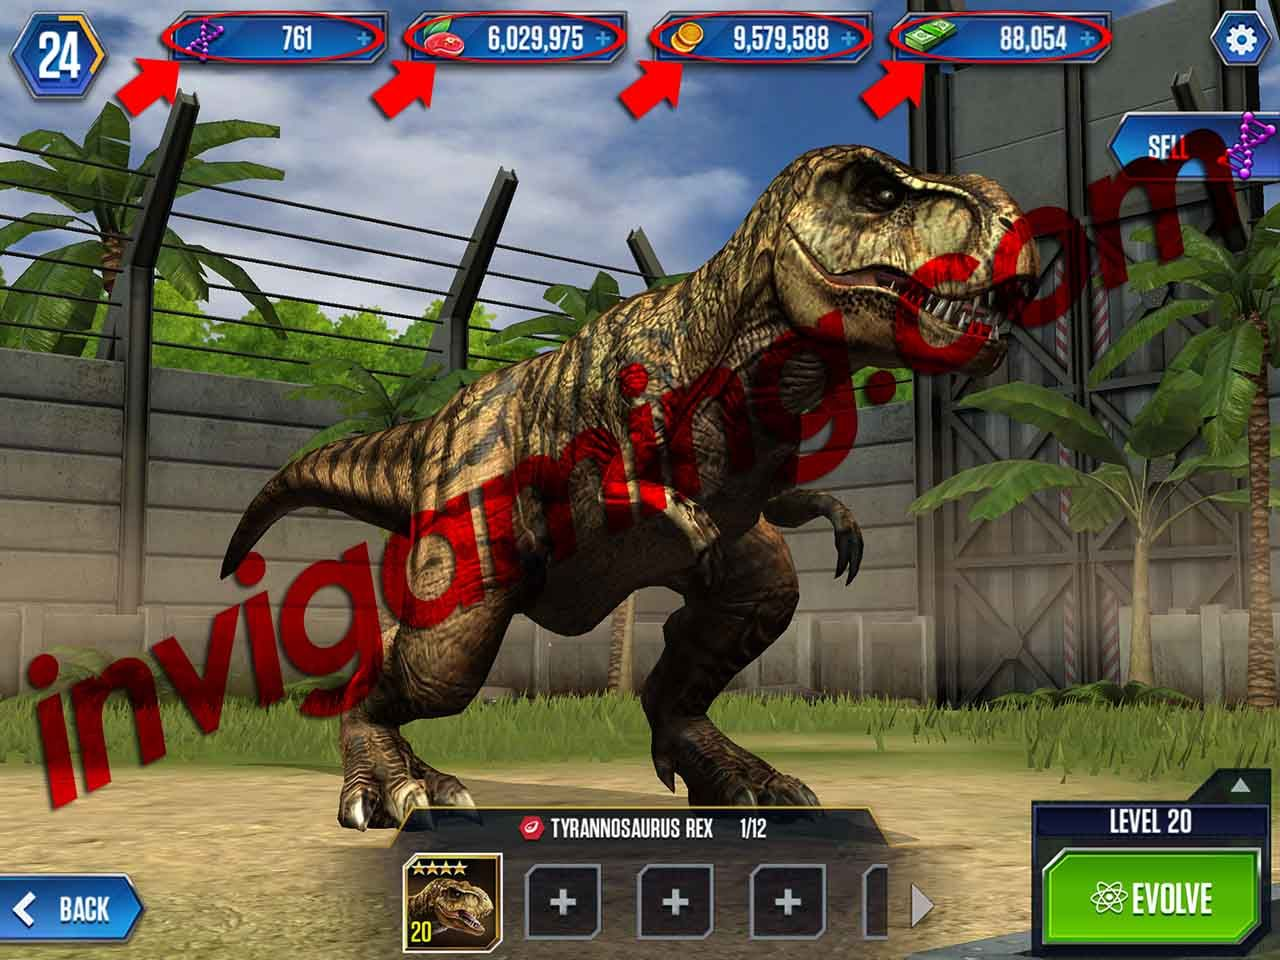 How To Get Indominus Rex In Jurassic World The Game